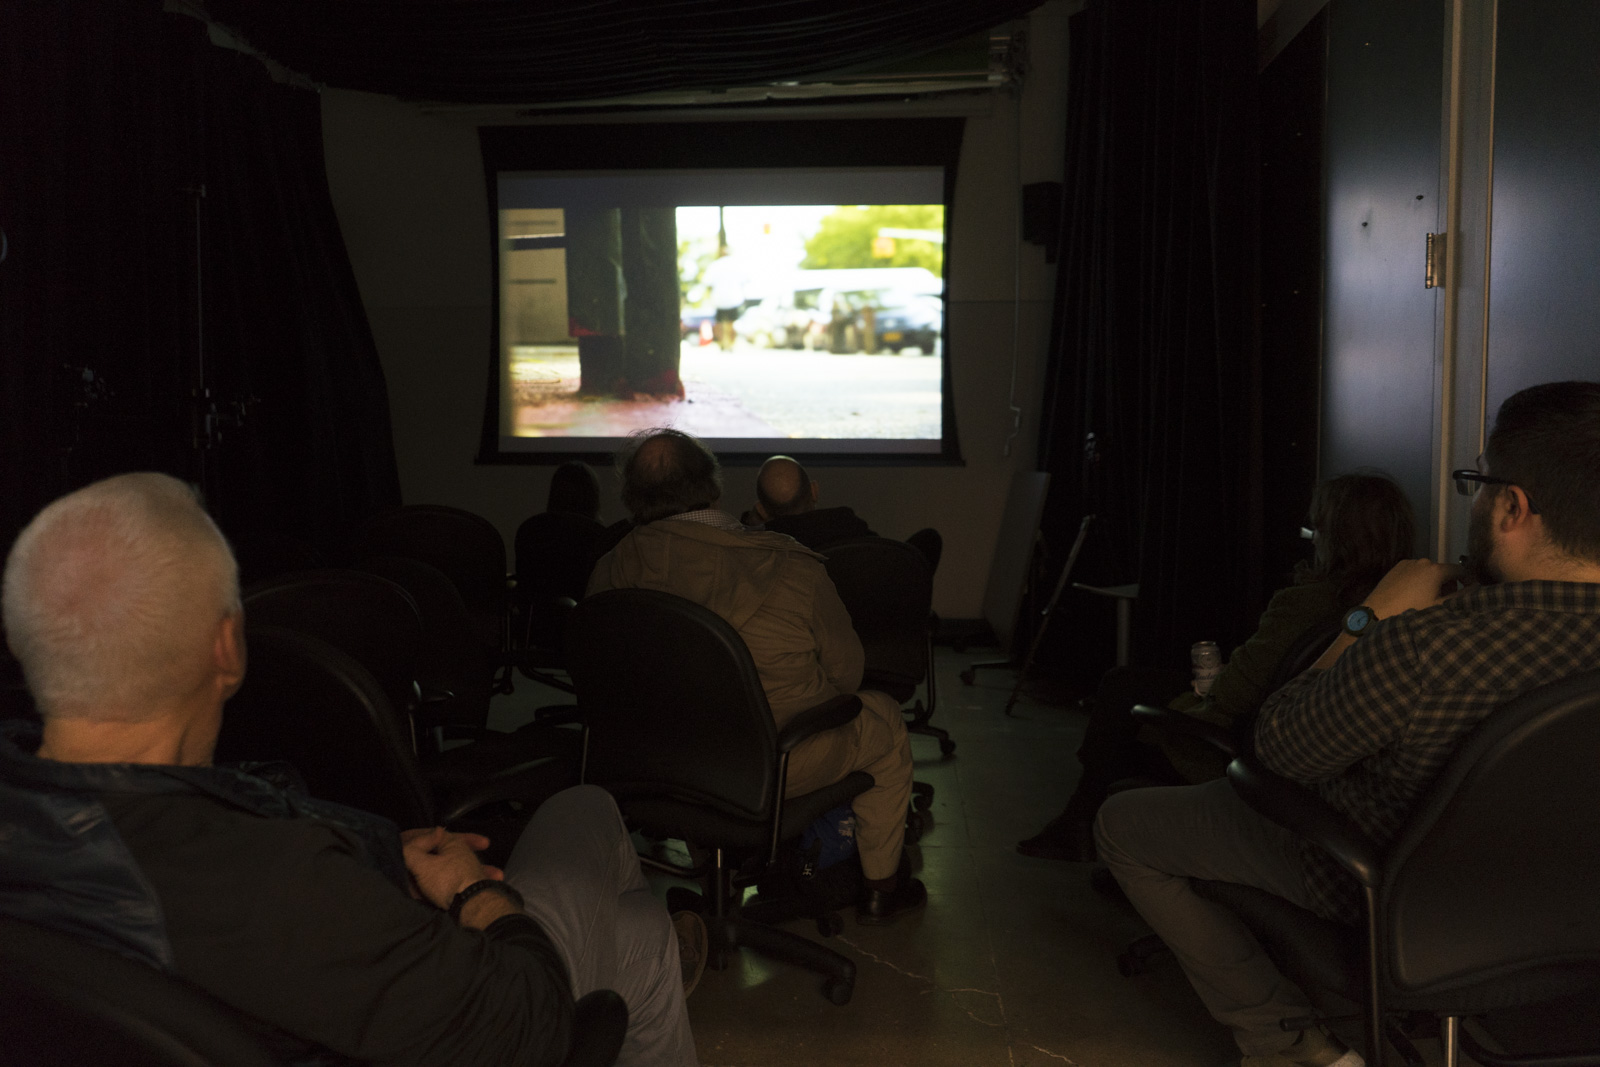 A glimpse at the film screening.